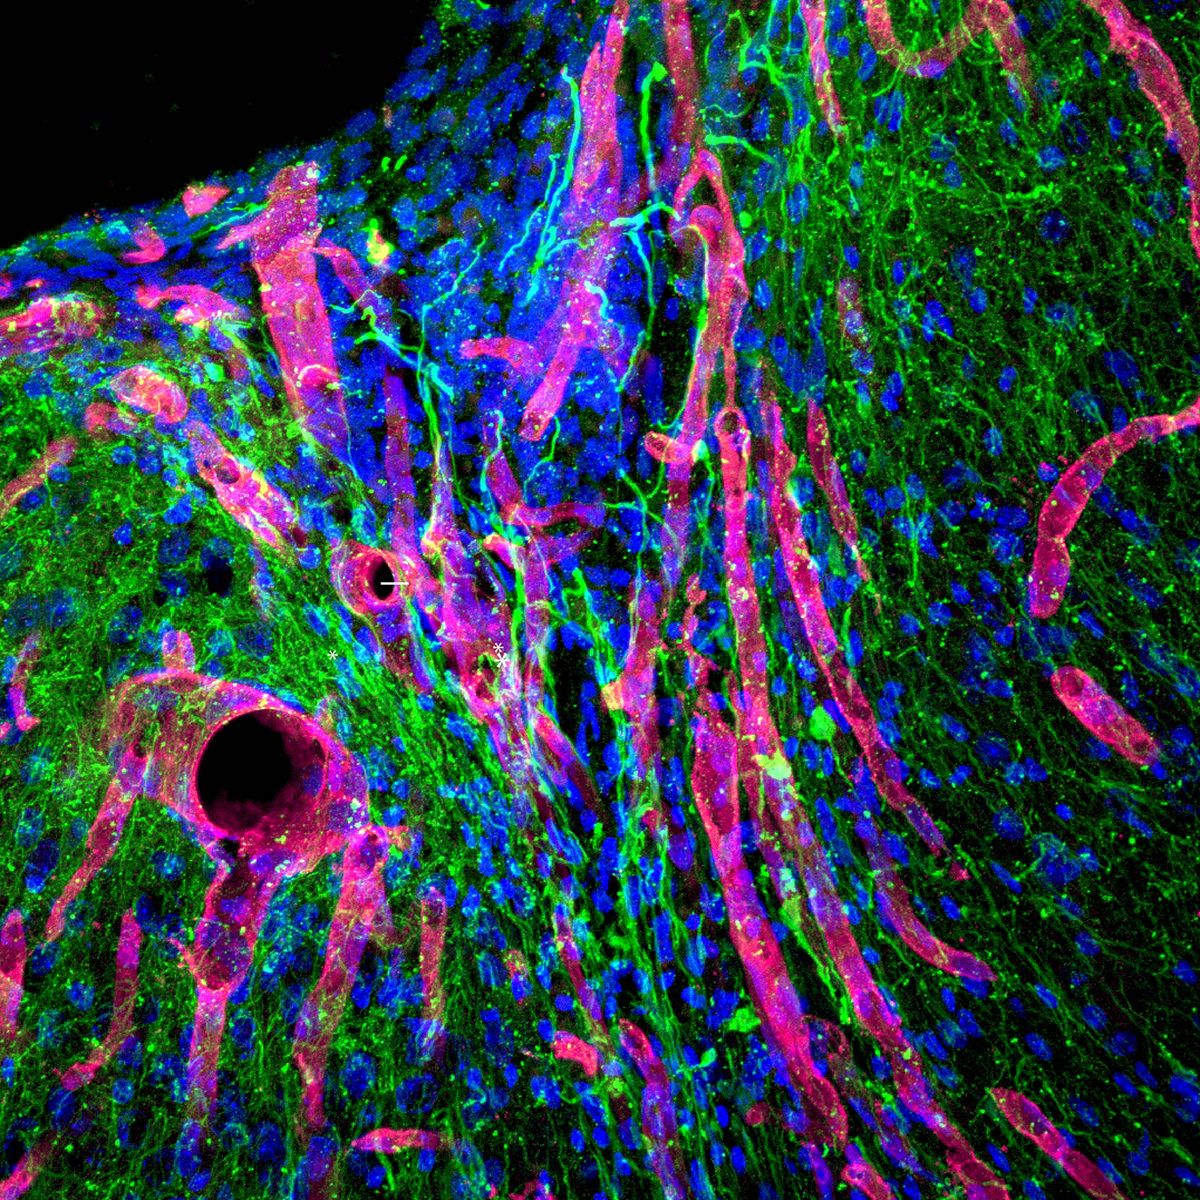 Biomaterial developed at UCLA helps regrow brain tissue